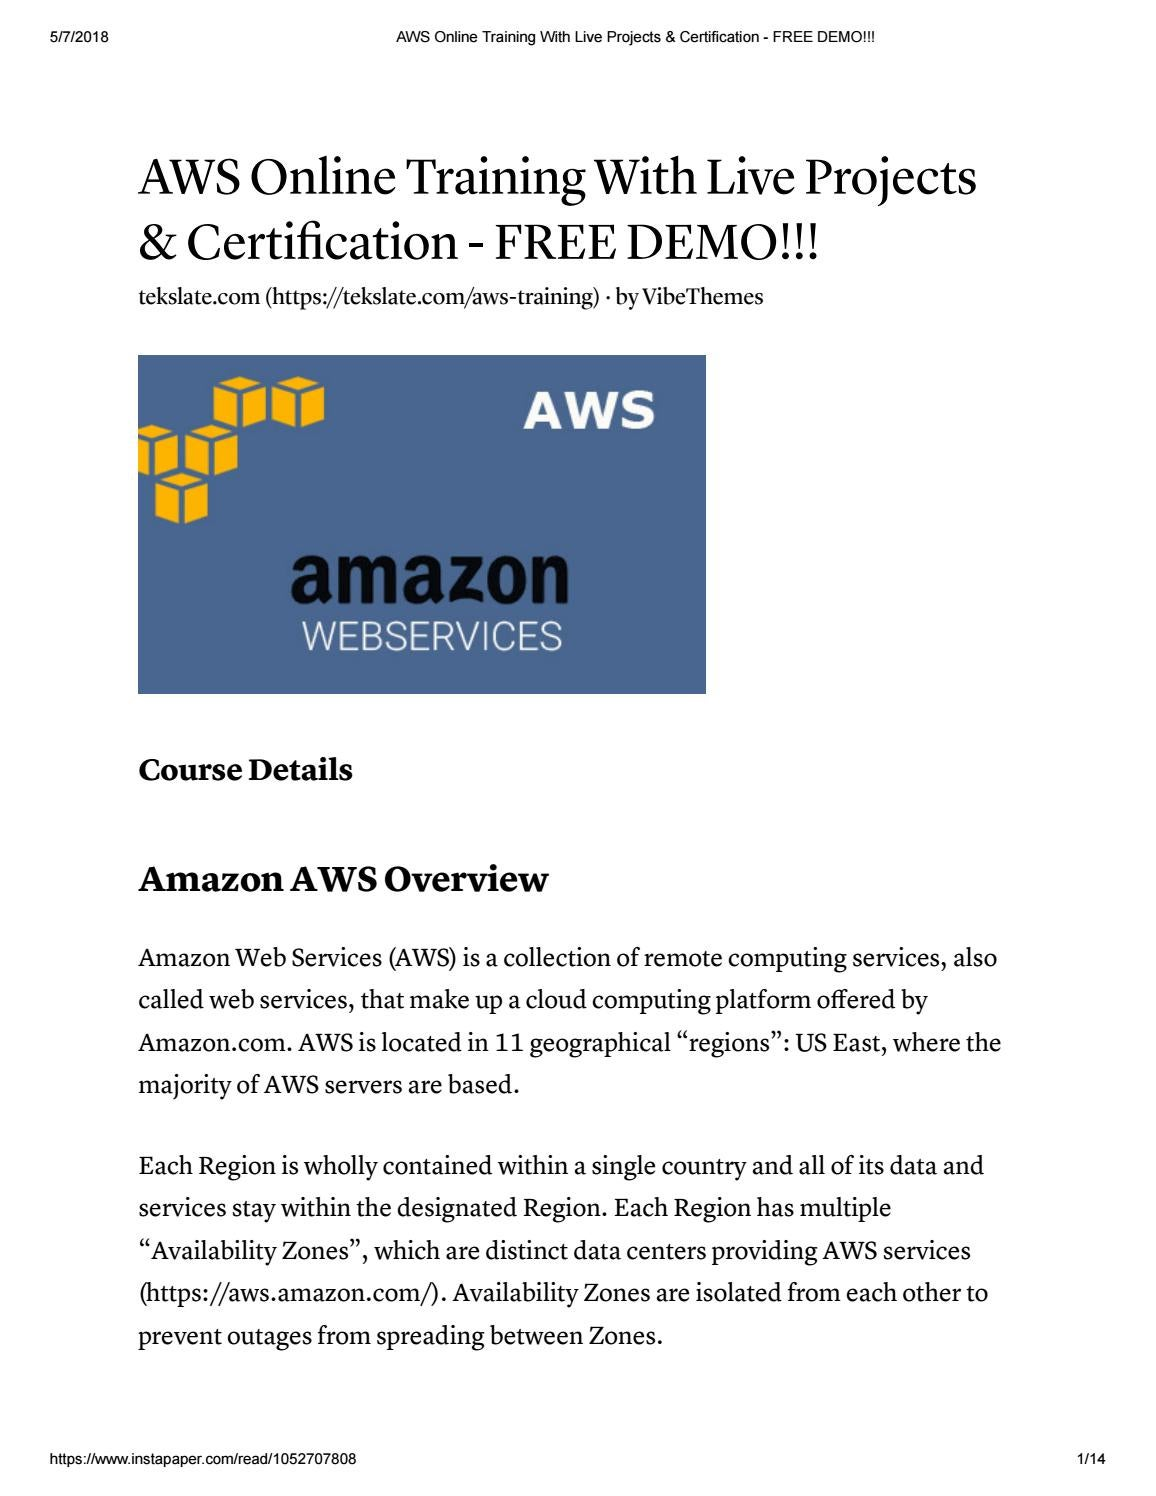 Aws online training with live projects & certification free